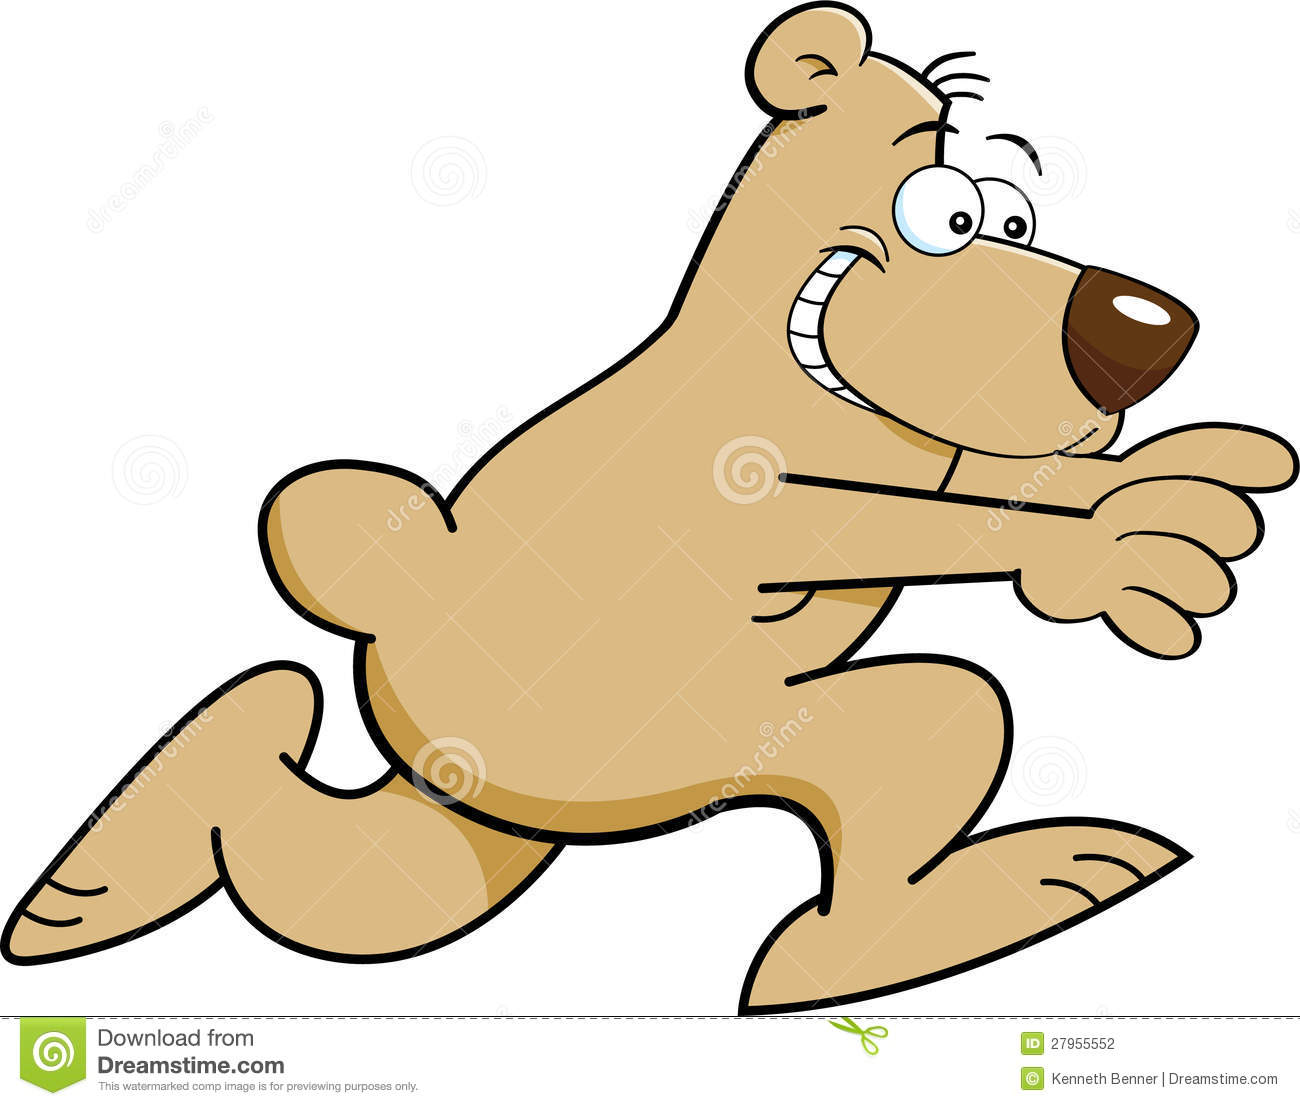 Cartoon bear running stock vector. Illustration of mascot.